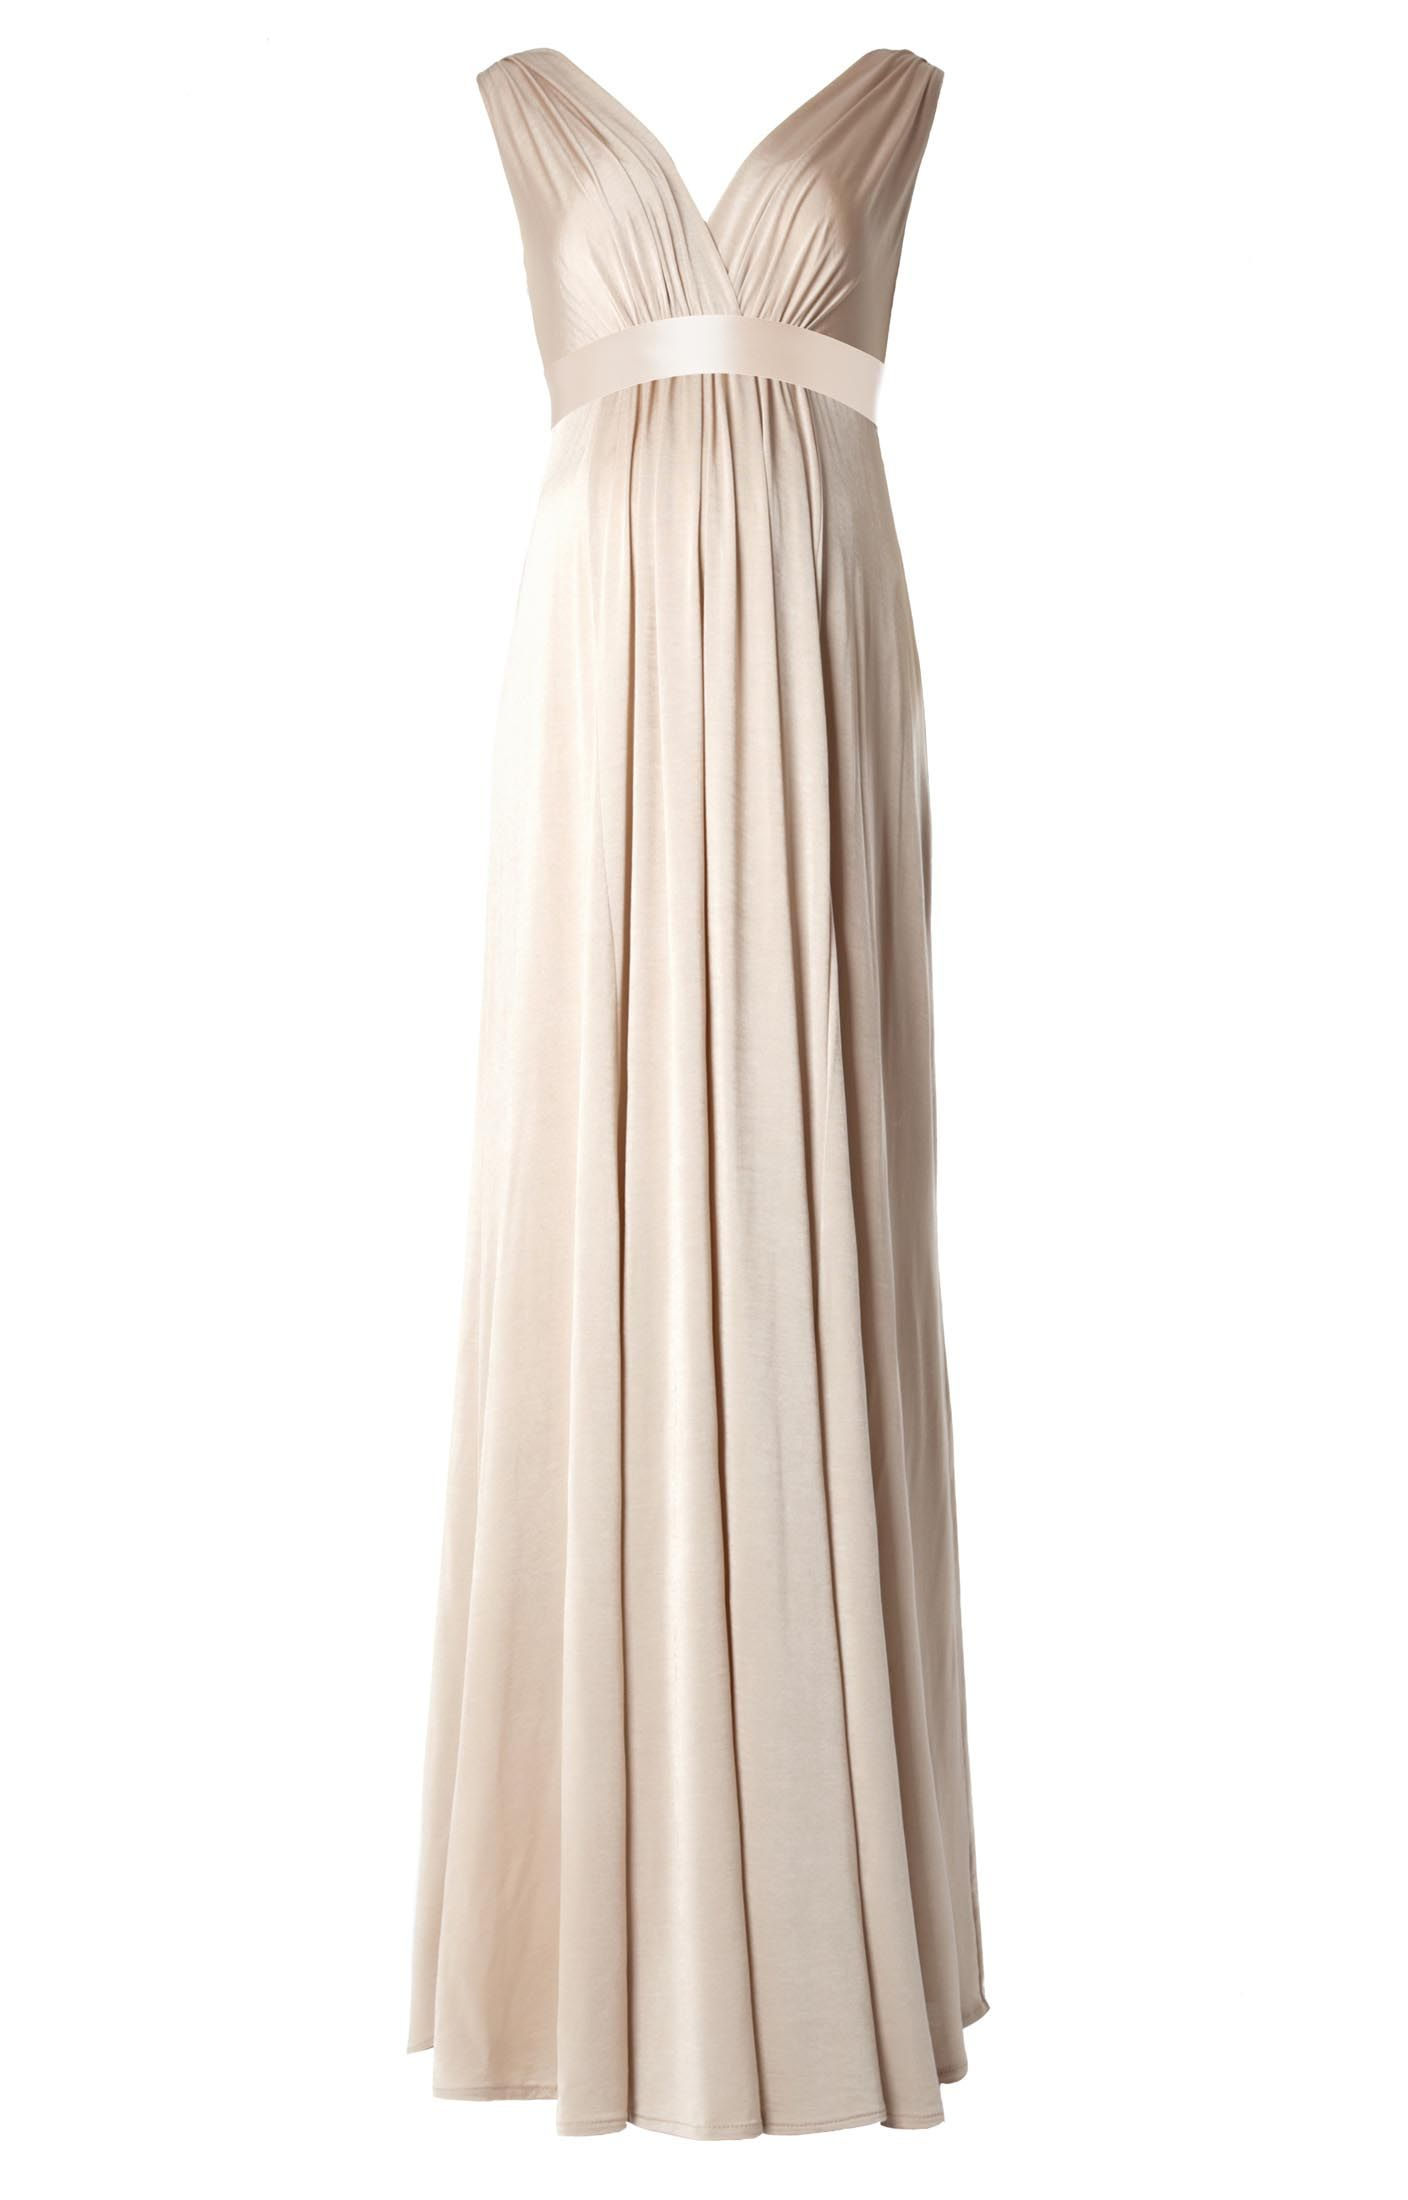 Anastasia maternity gown gold dust by tiffany rose maternity